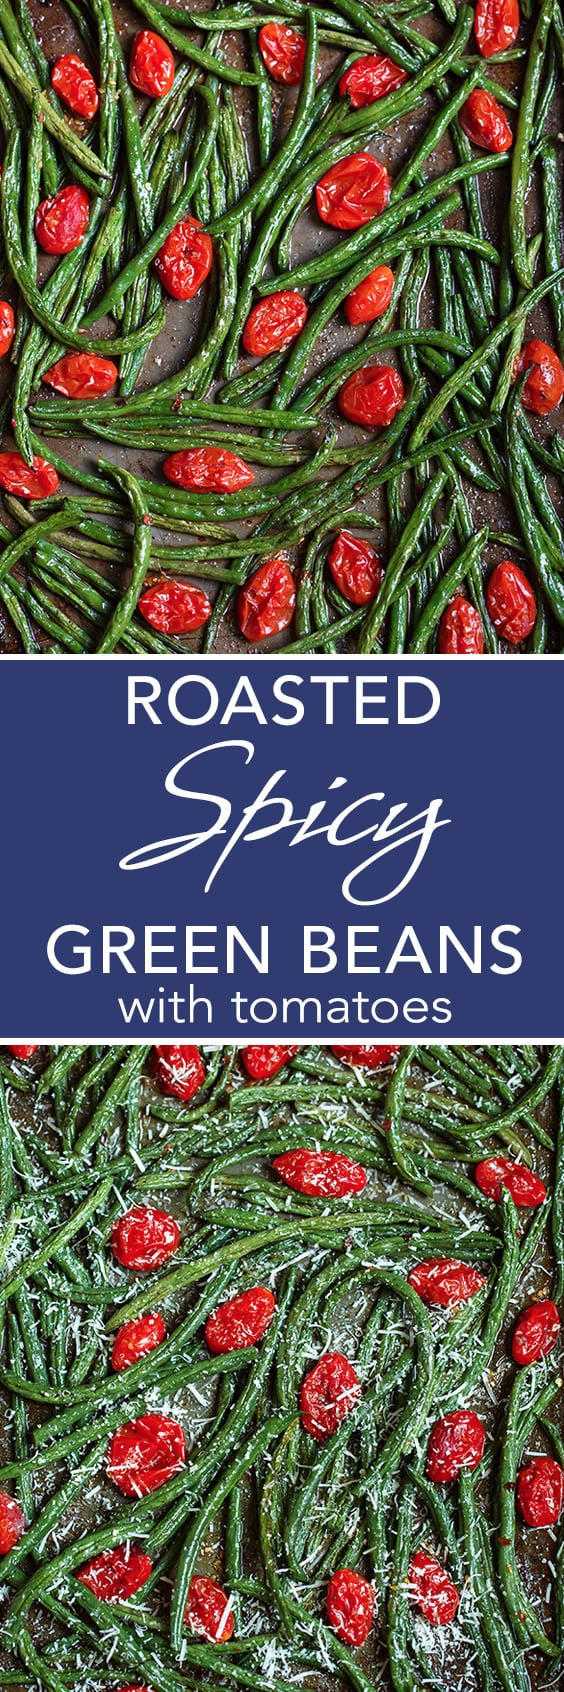 Roasted Spicy Green Beans with Tomatoes are flavorful and tender. A little kick of spice makes these roasted veggies pop! simplyhappyfoodie.com